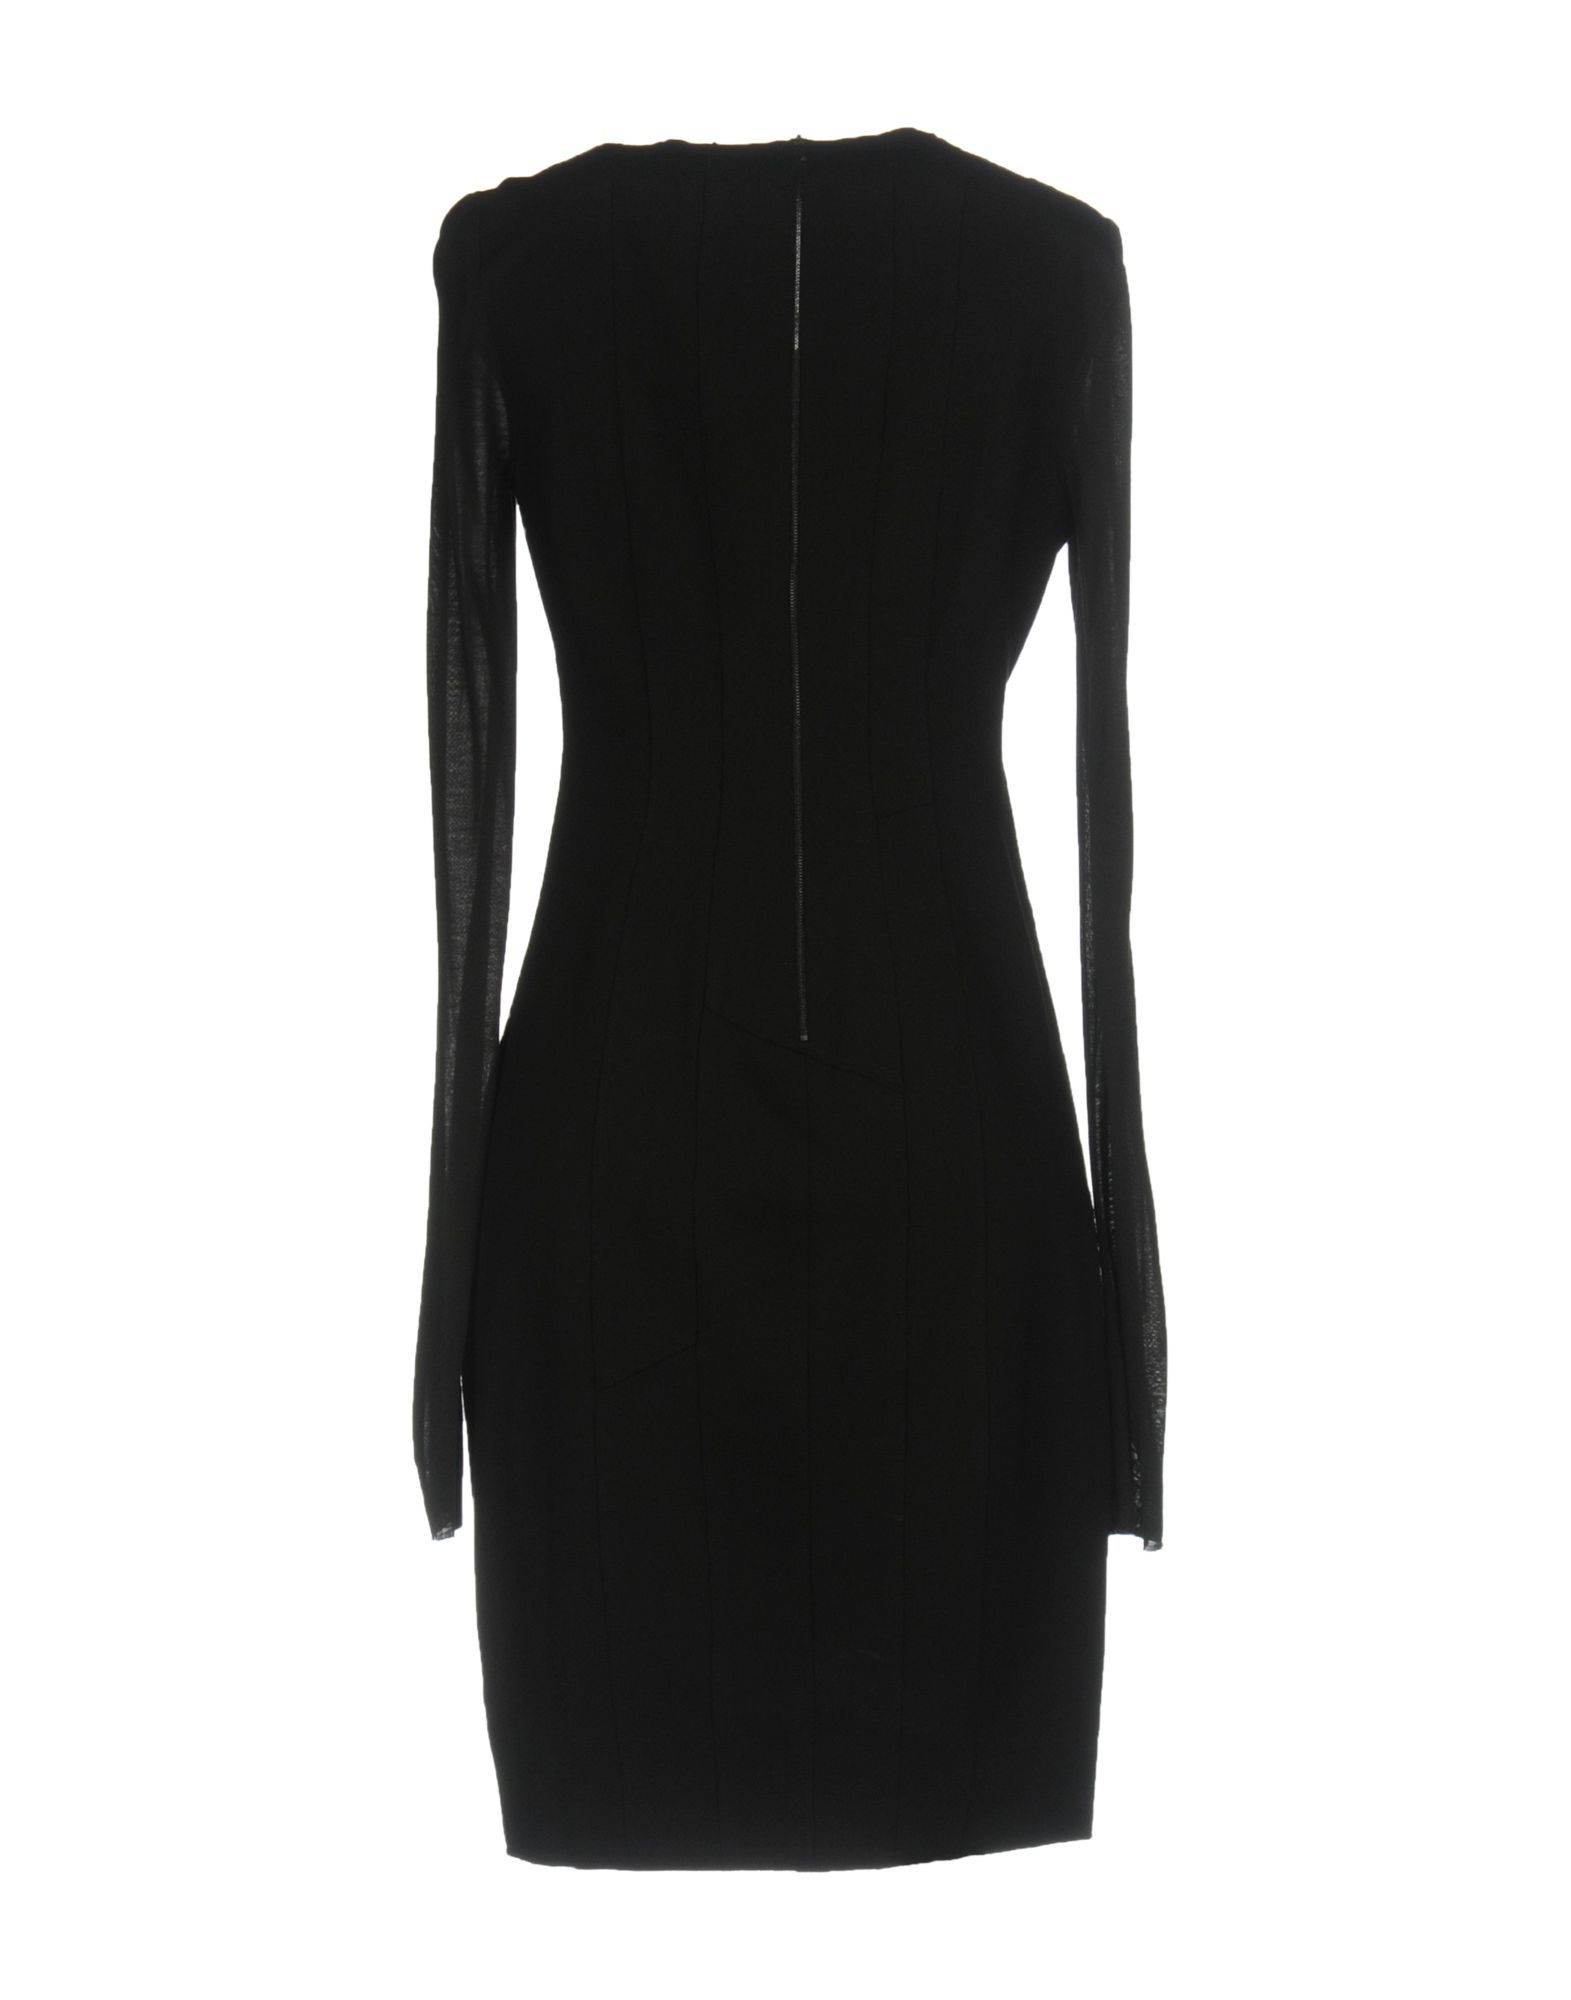 Elie Tahari Black Jersey And Leather Long Sleeve Dress